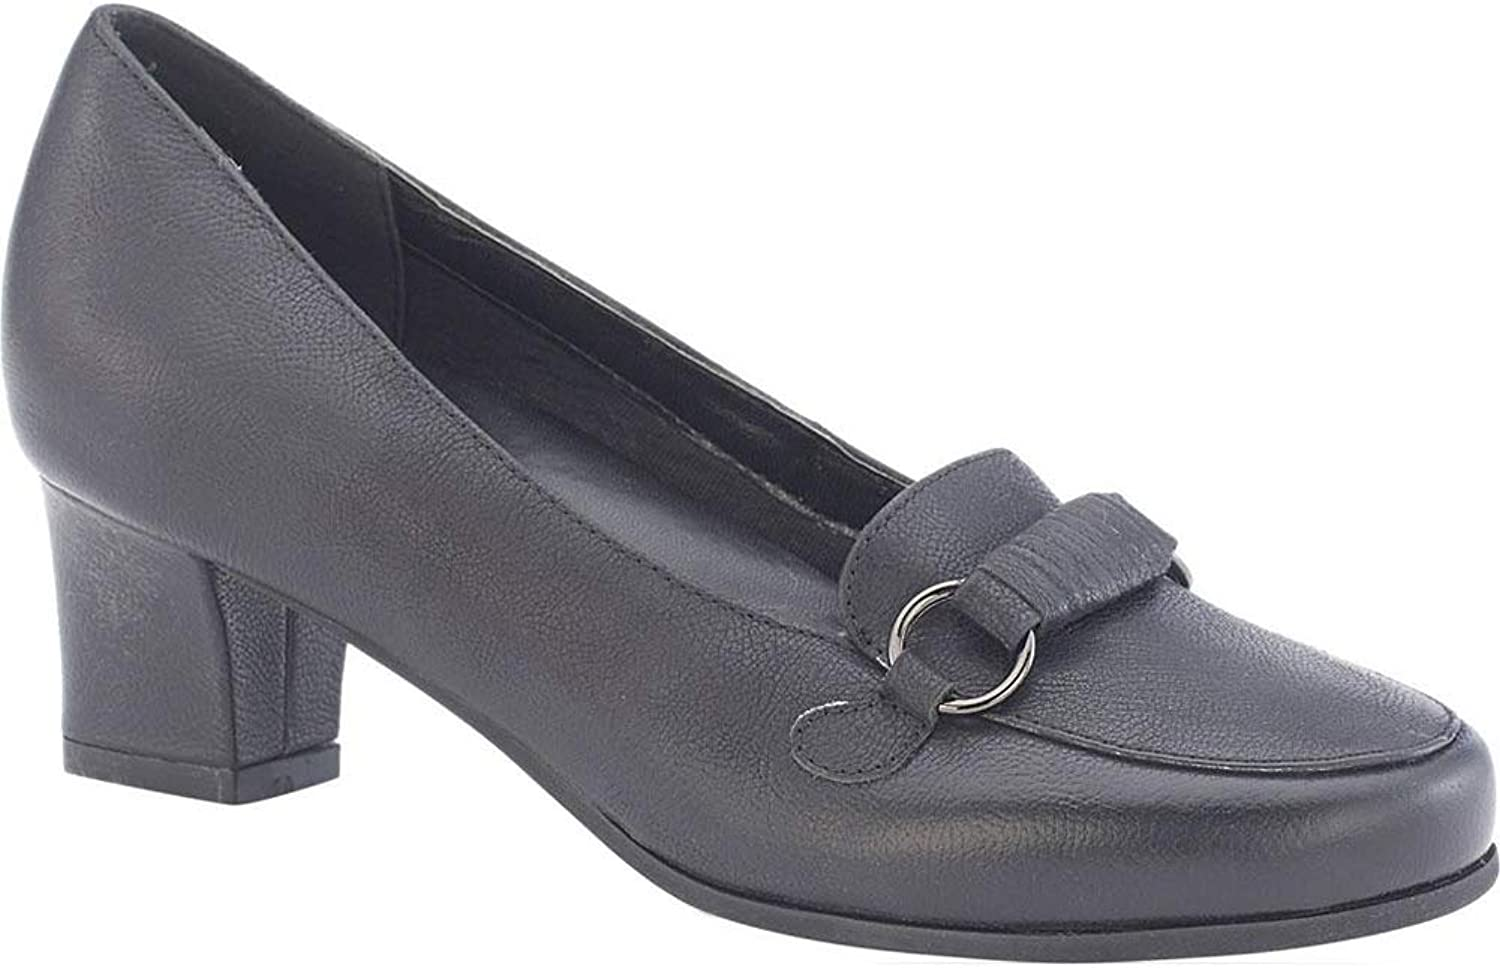 David Tate Wouomo Perky Tailorosso Pumps, nero, 12 WW